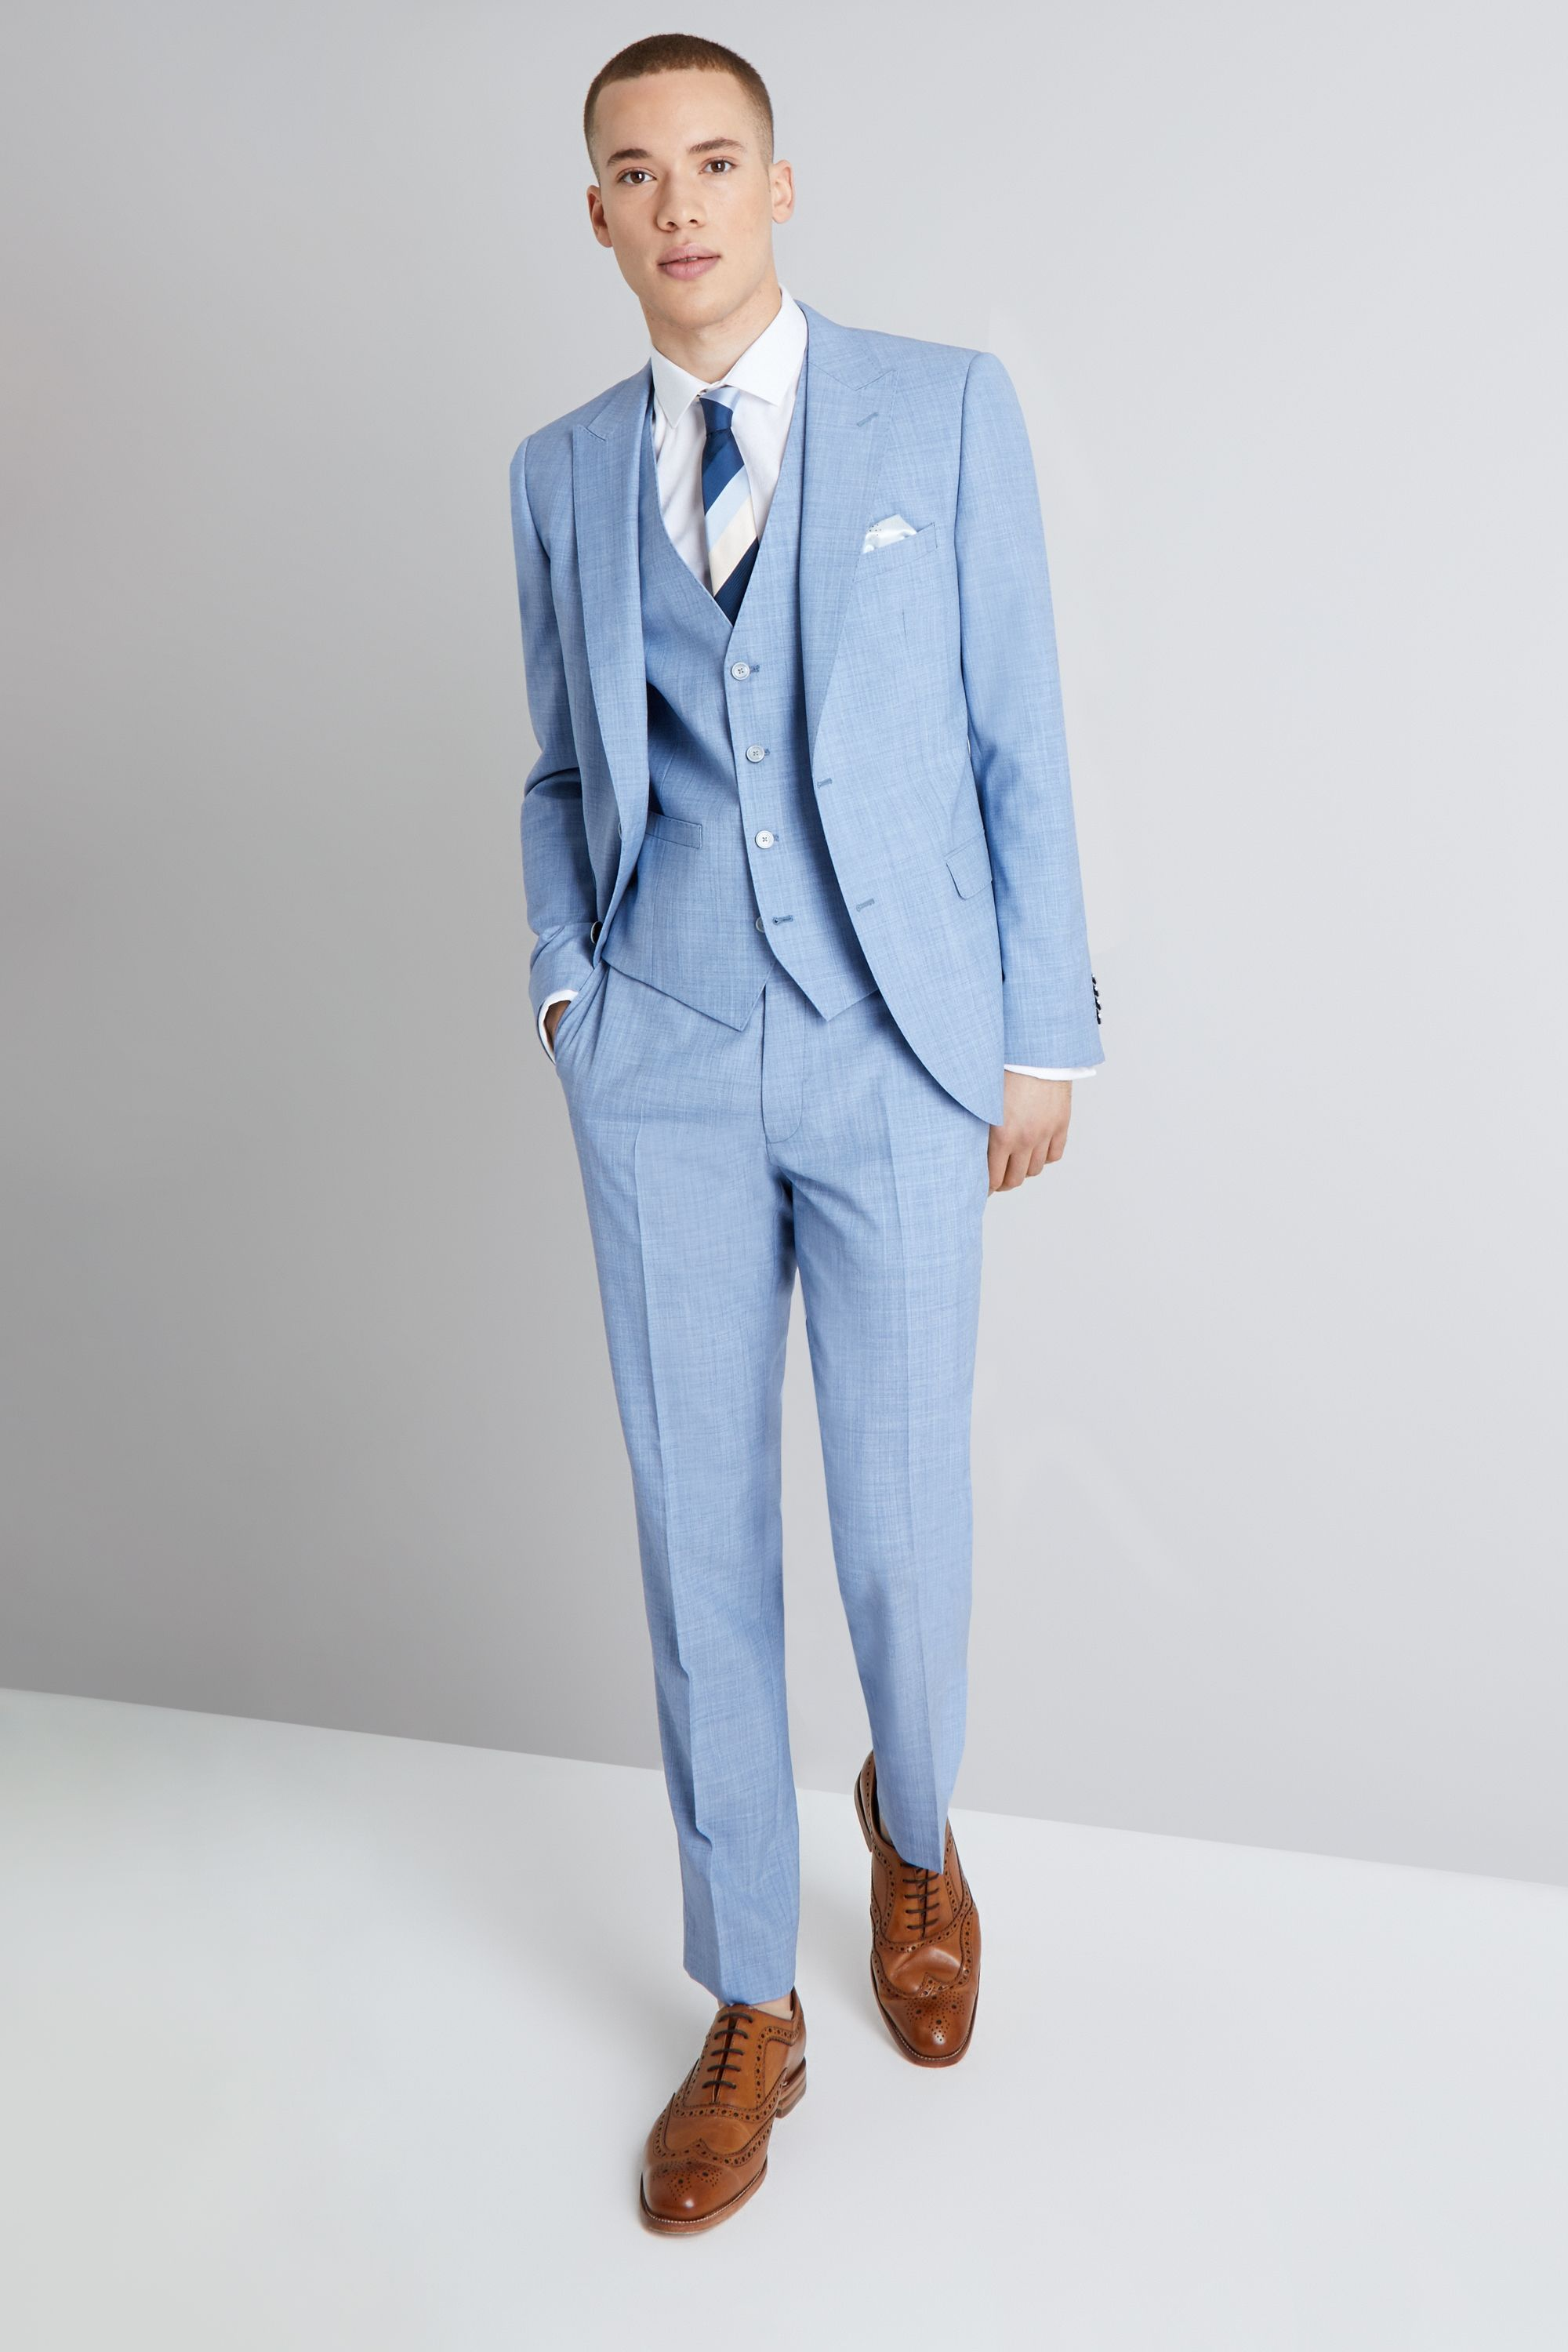 French Connection Slim Fit Sky Blue Marl Suit | Wedding suits and ...